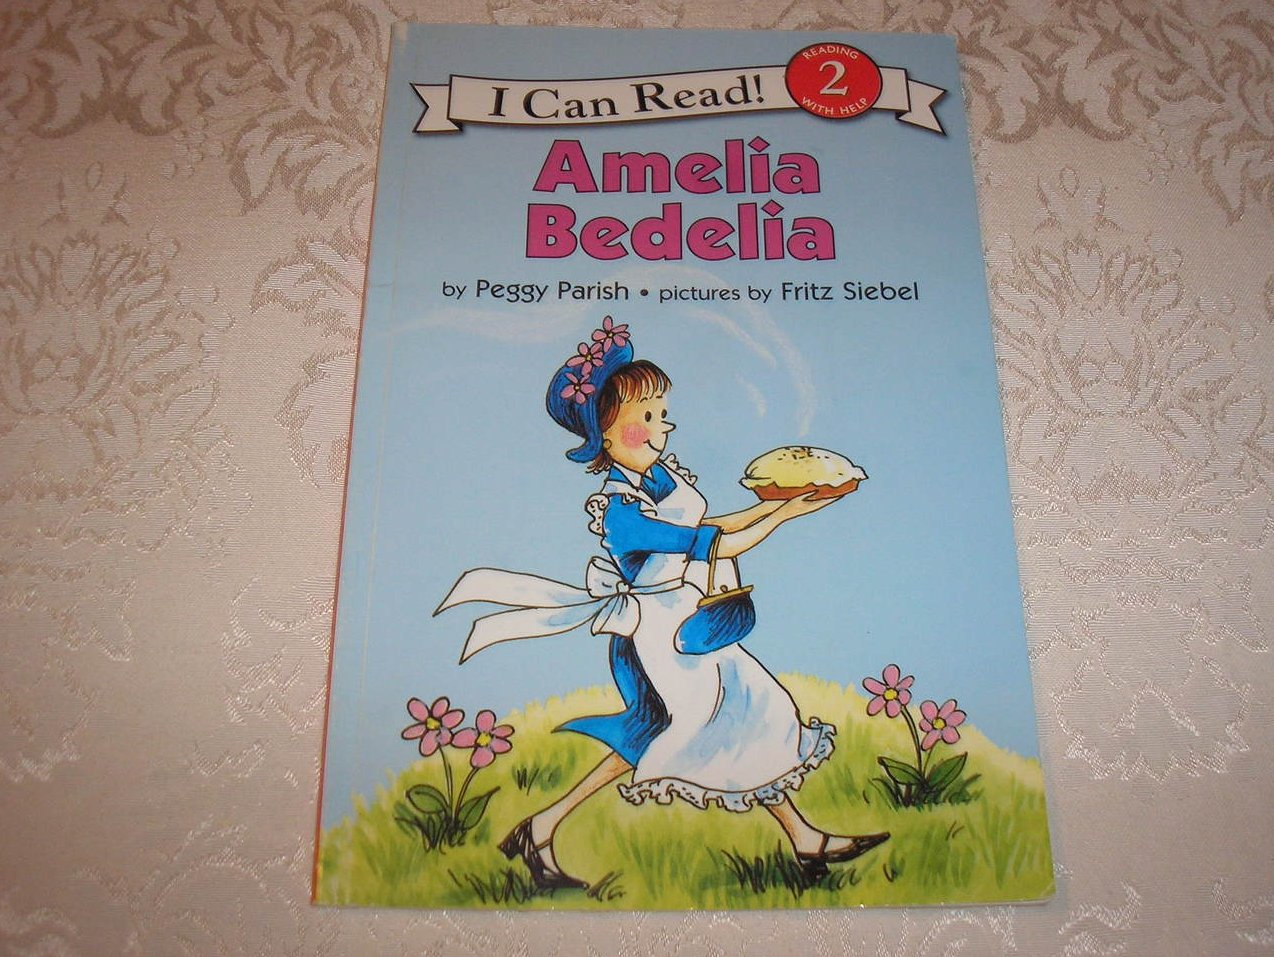 Amelia Bedelia Peggy Parish good clean level 2 reader